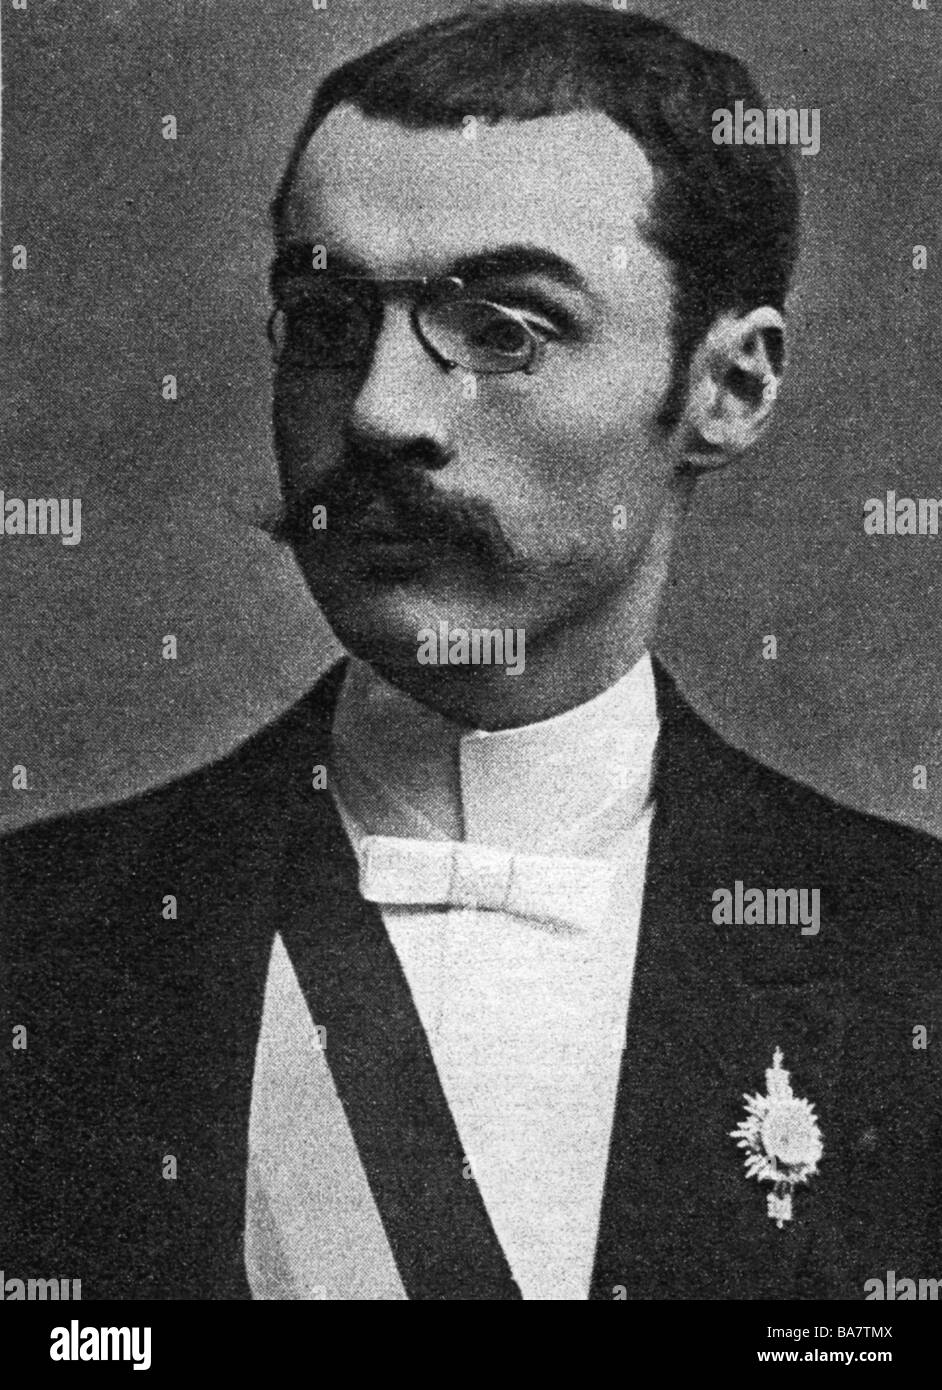 Humbert, Frederic, French crime, husband of Therese Humbert, portrait, circa 1910, , Additional-Rights-Clearances - Stock Image